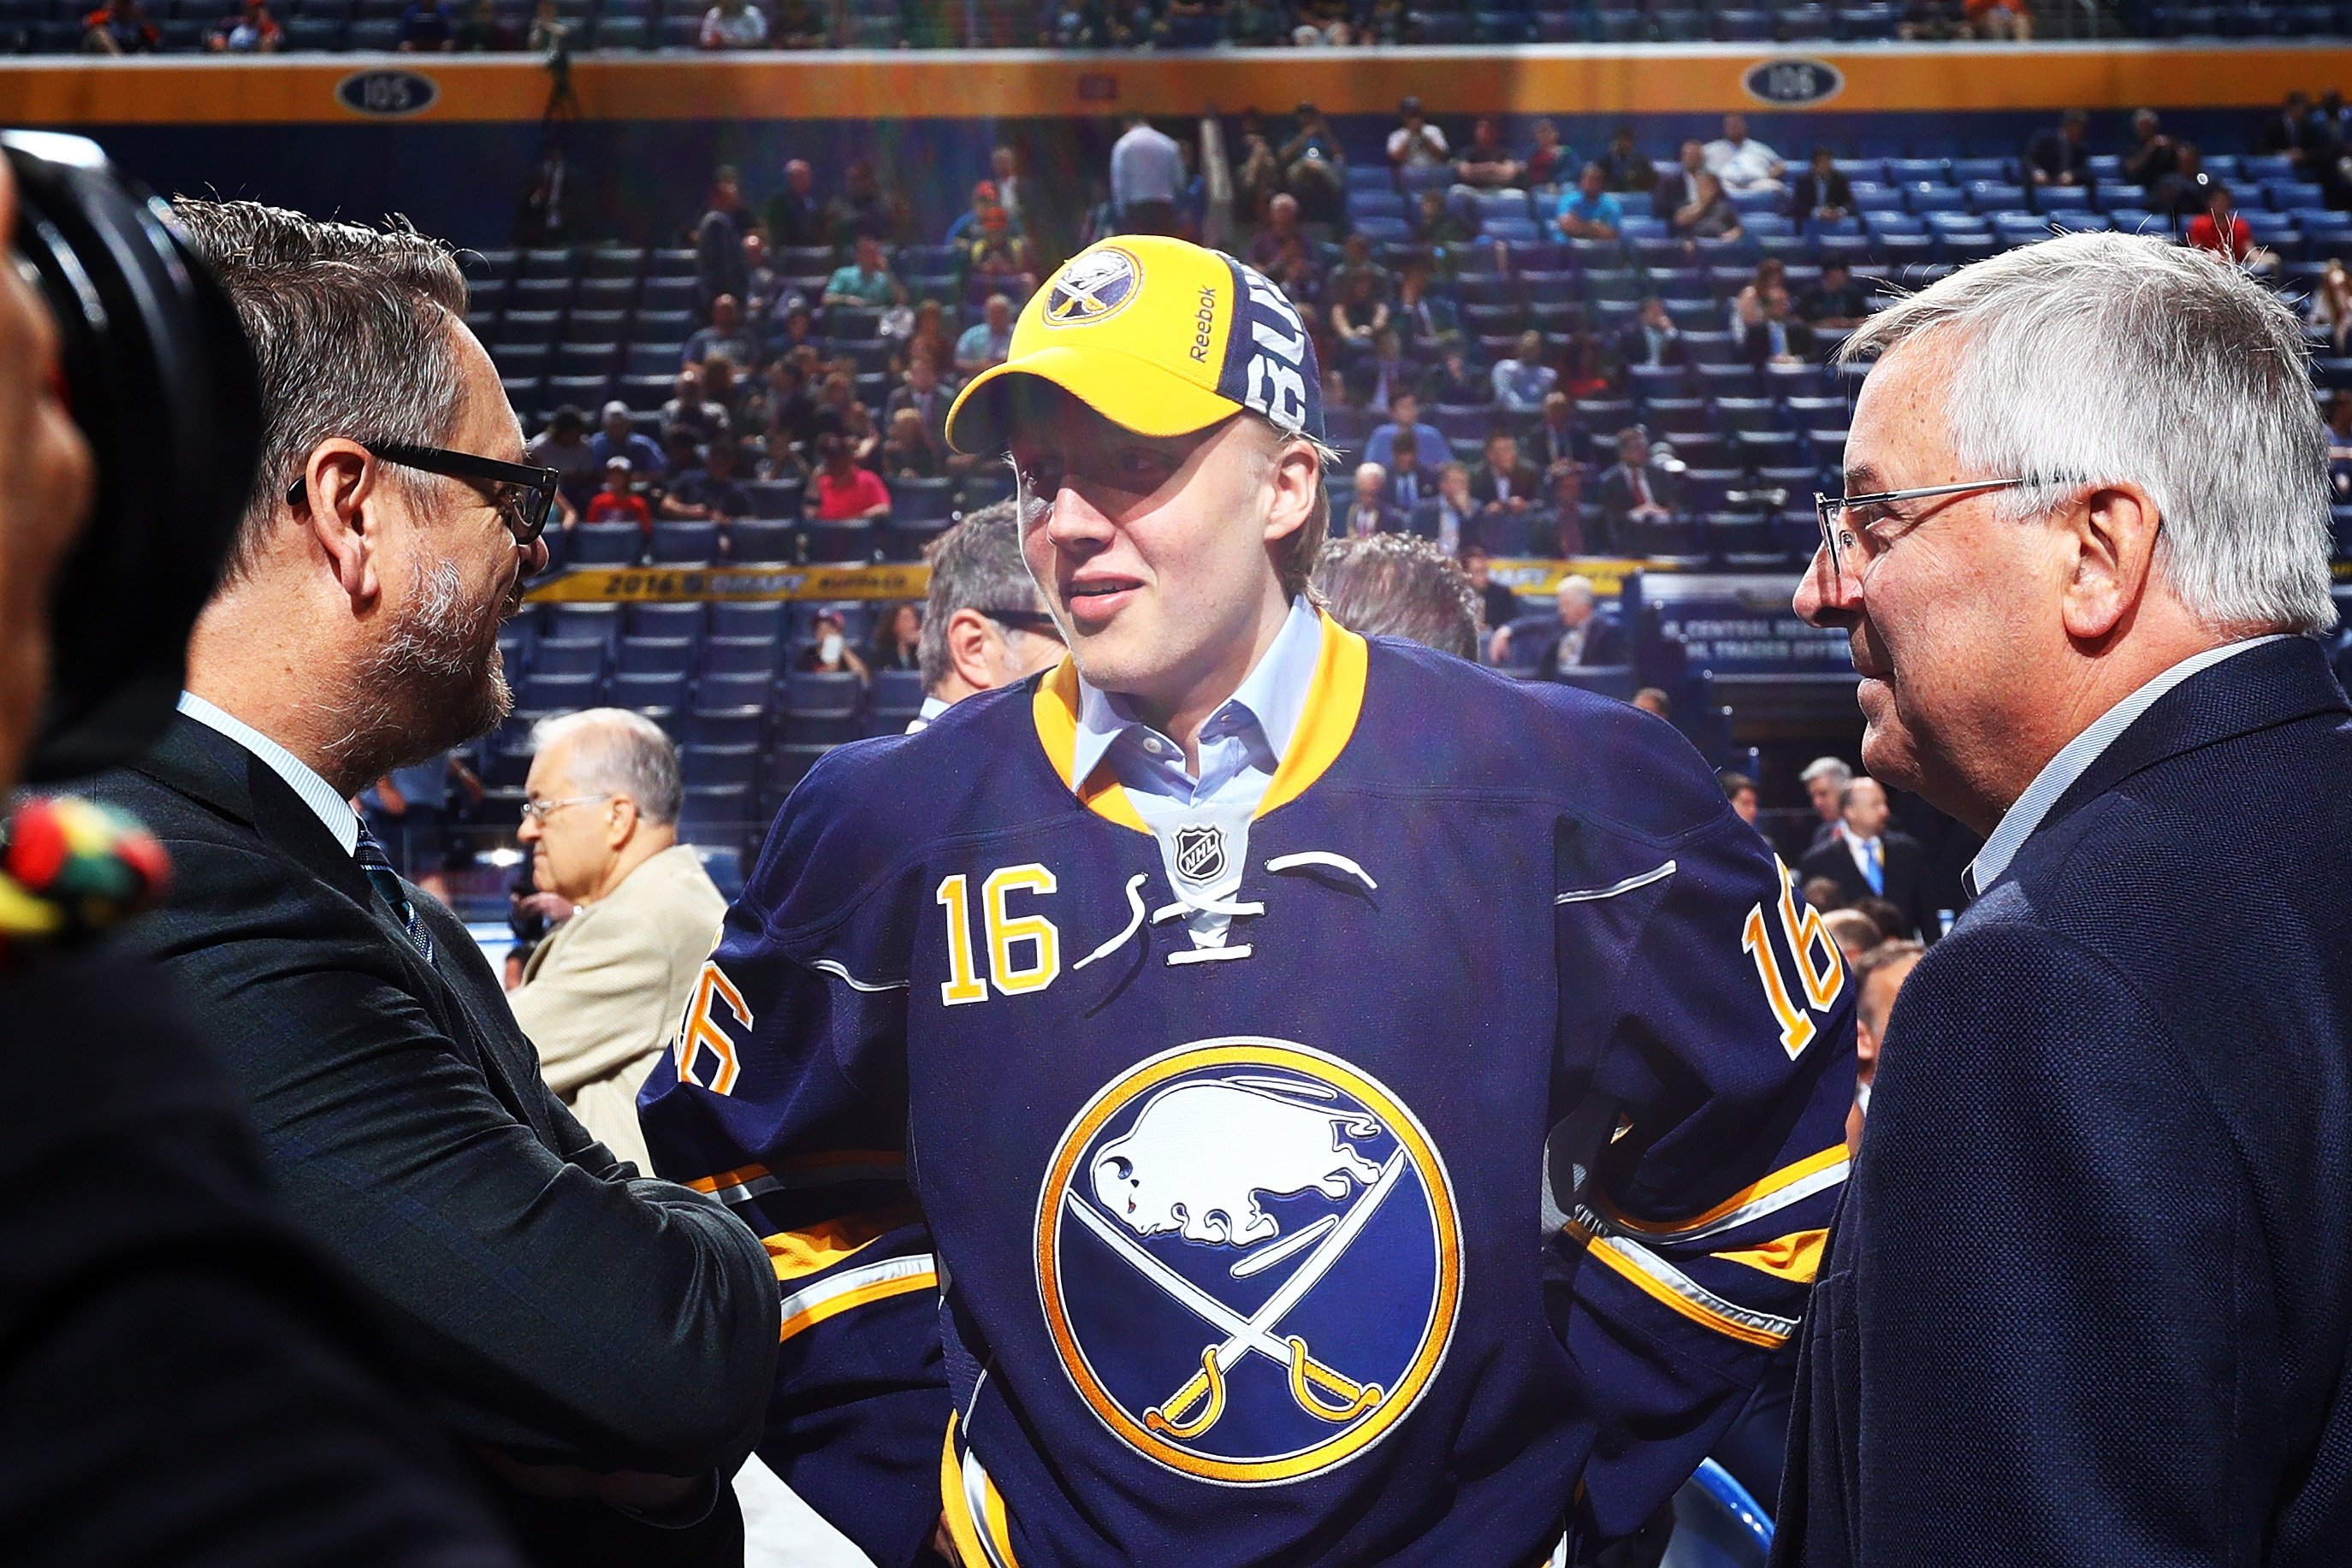 Sabres GM Tim Murray, left, and owner Terry Pegula, right, welcomed Alex Nylander to Buffalo last June and again Monday. (Getty Images)